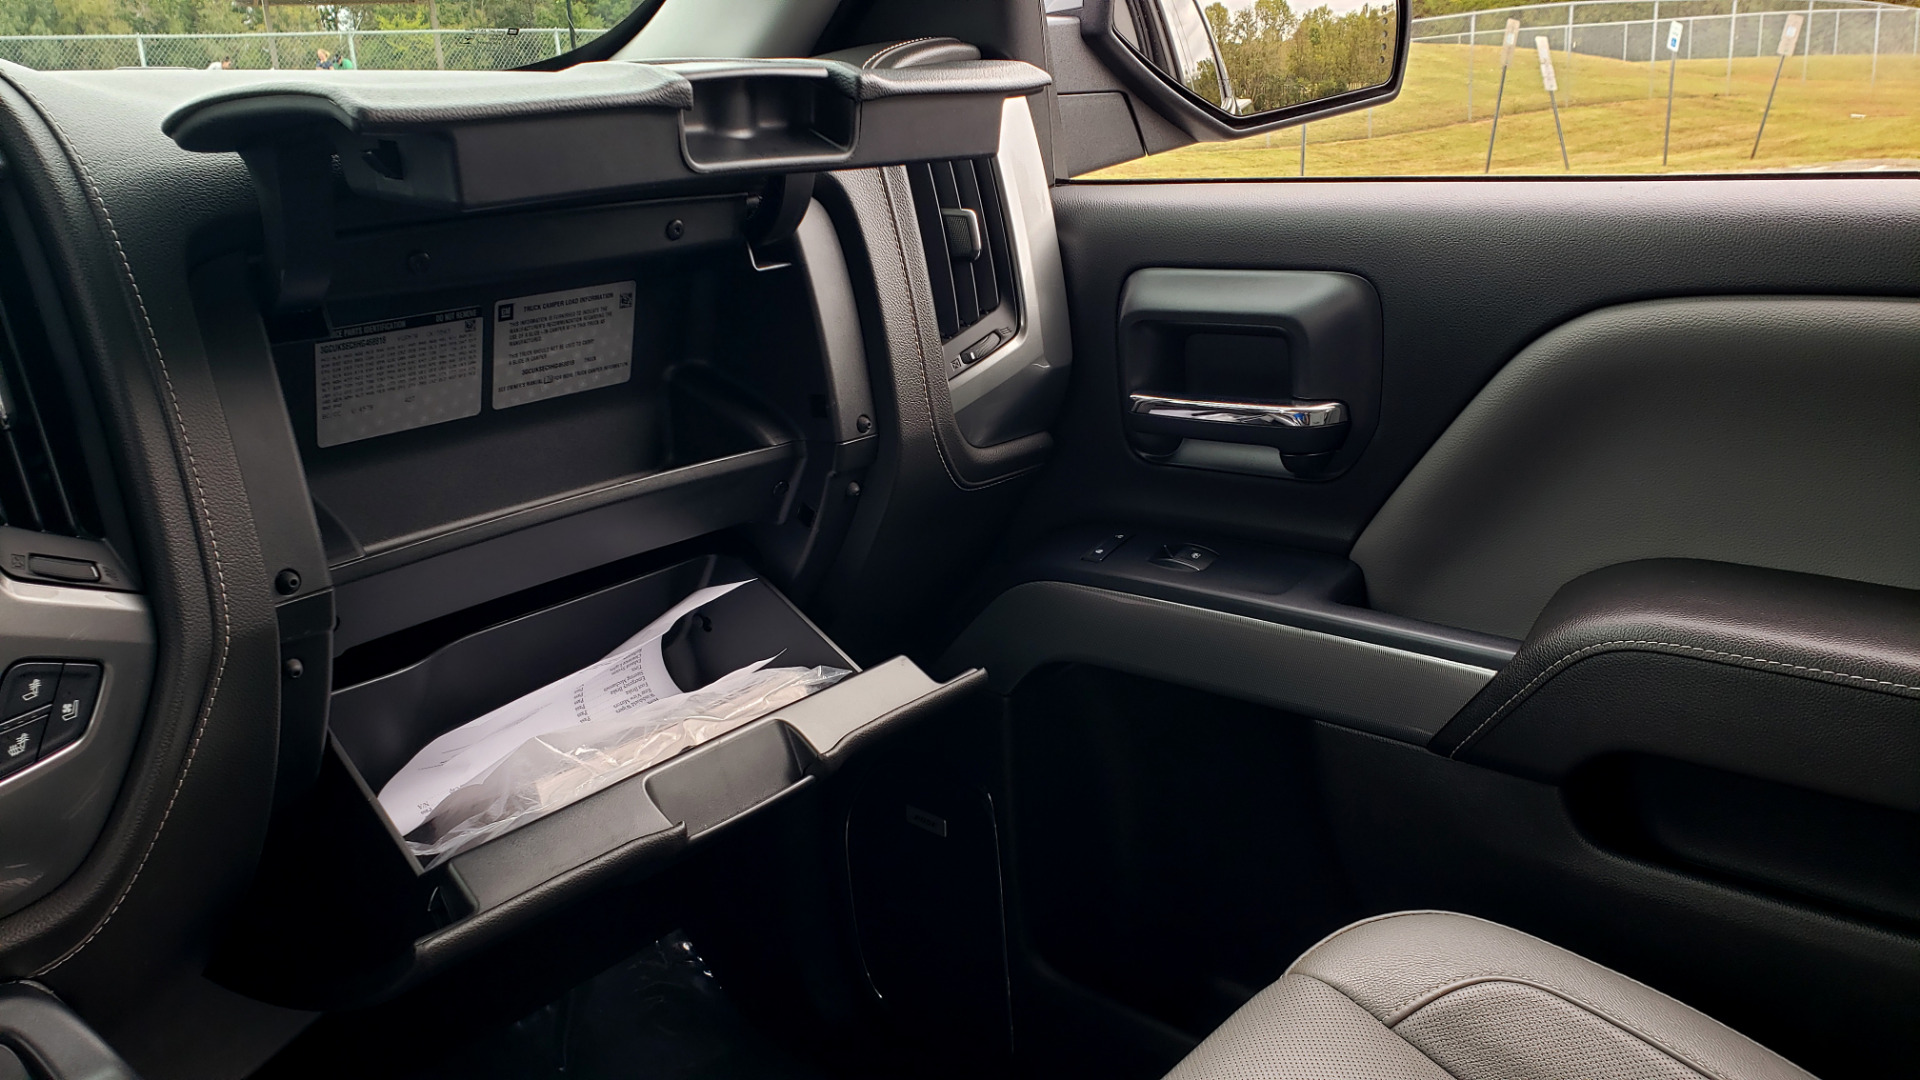 Used 2017 Chevrolet SILVERADO 1500 LTZ 4WD / NAV / BOSE / LEATHER / CAMERA / LOADED for sale Sold at Formula Imports in Charlotte NC 28227 60